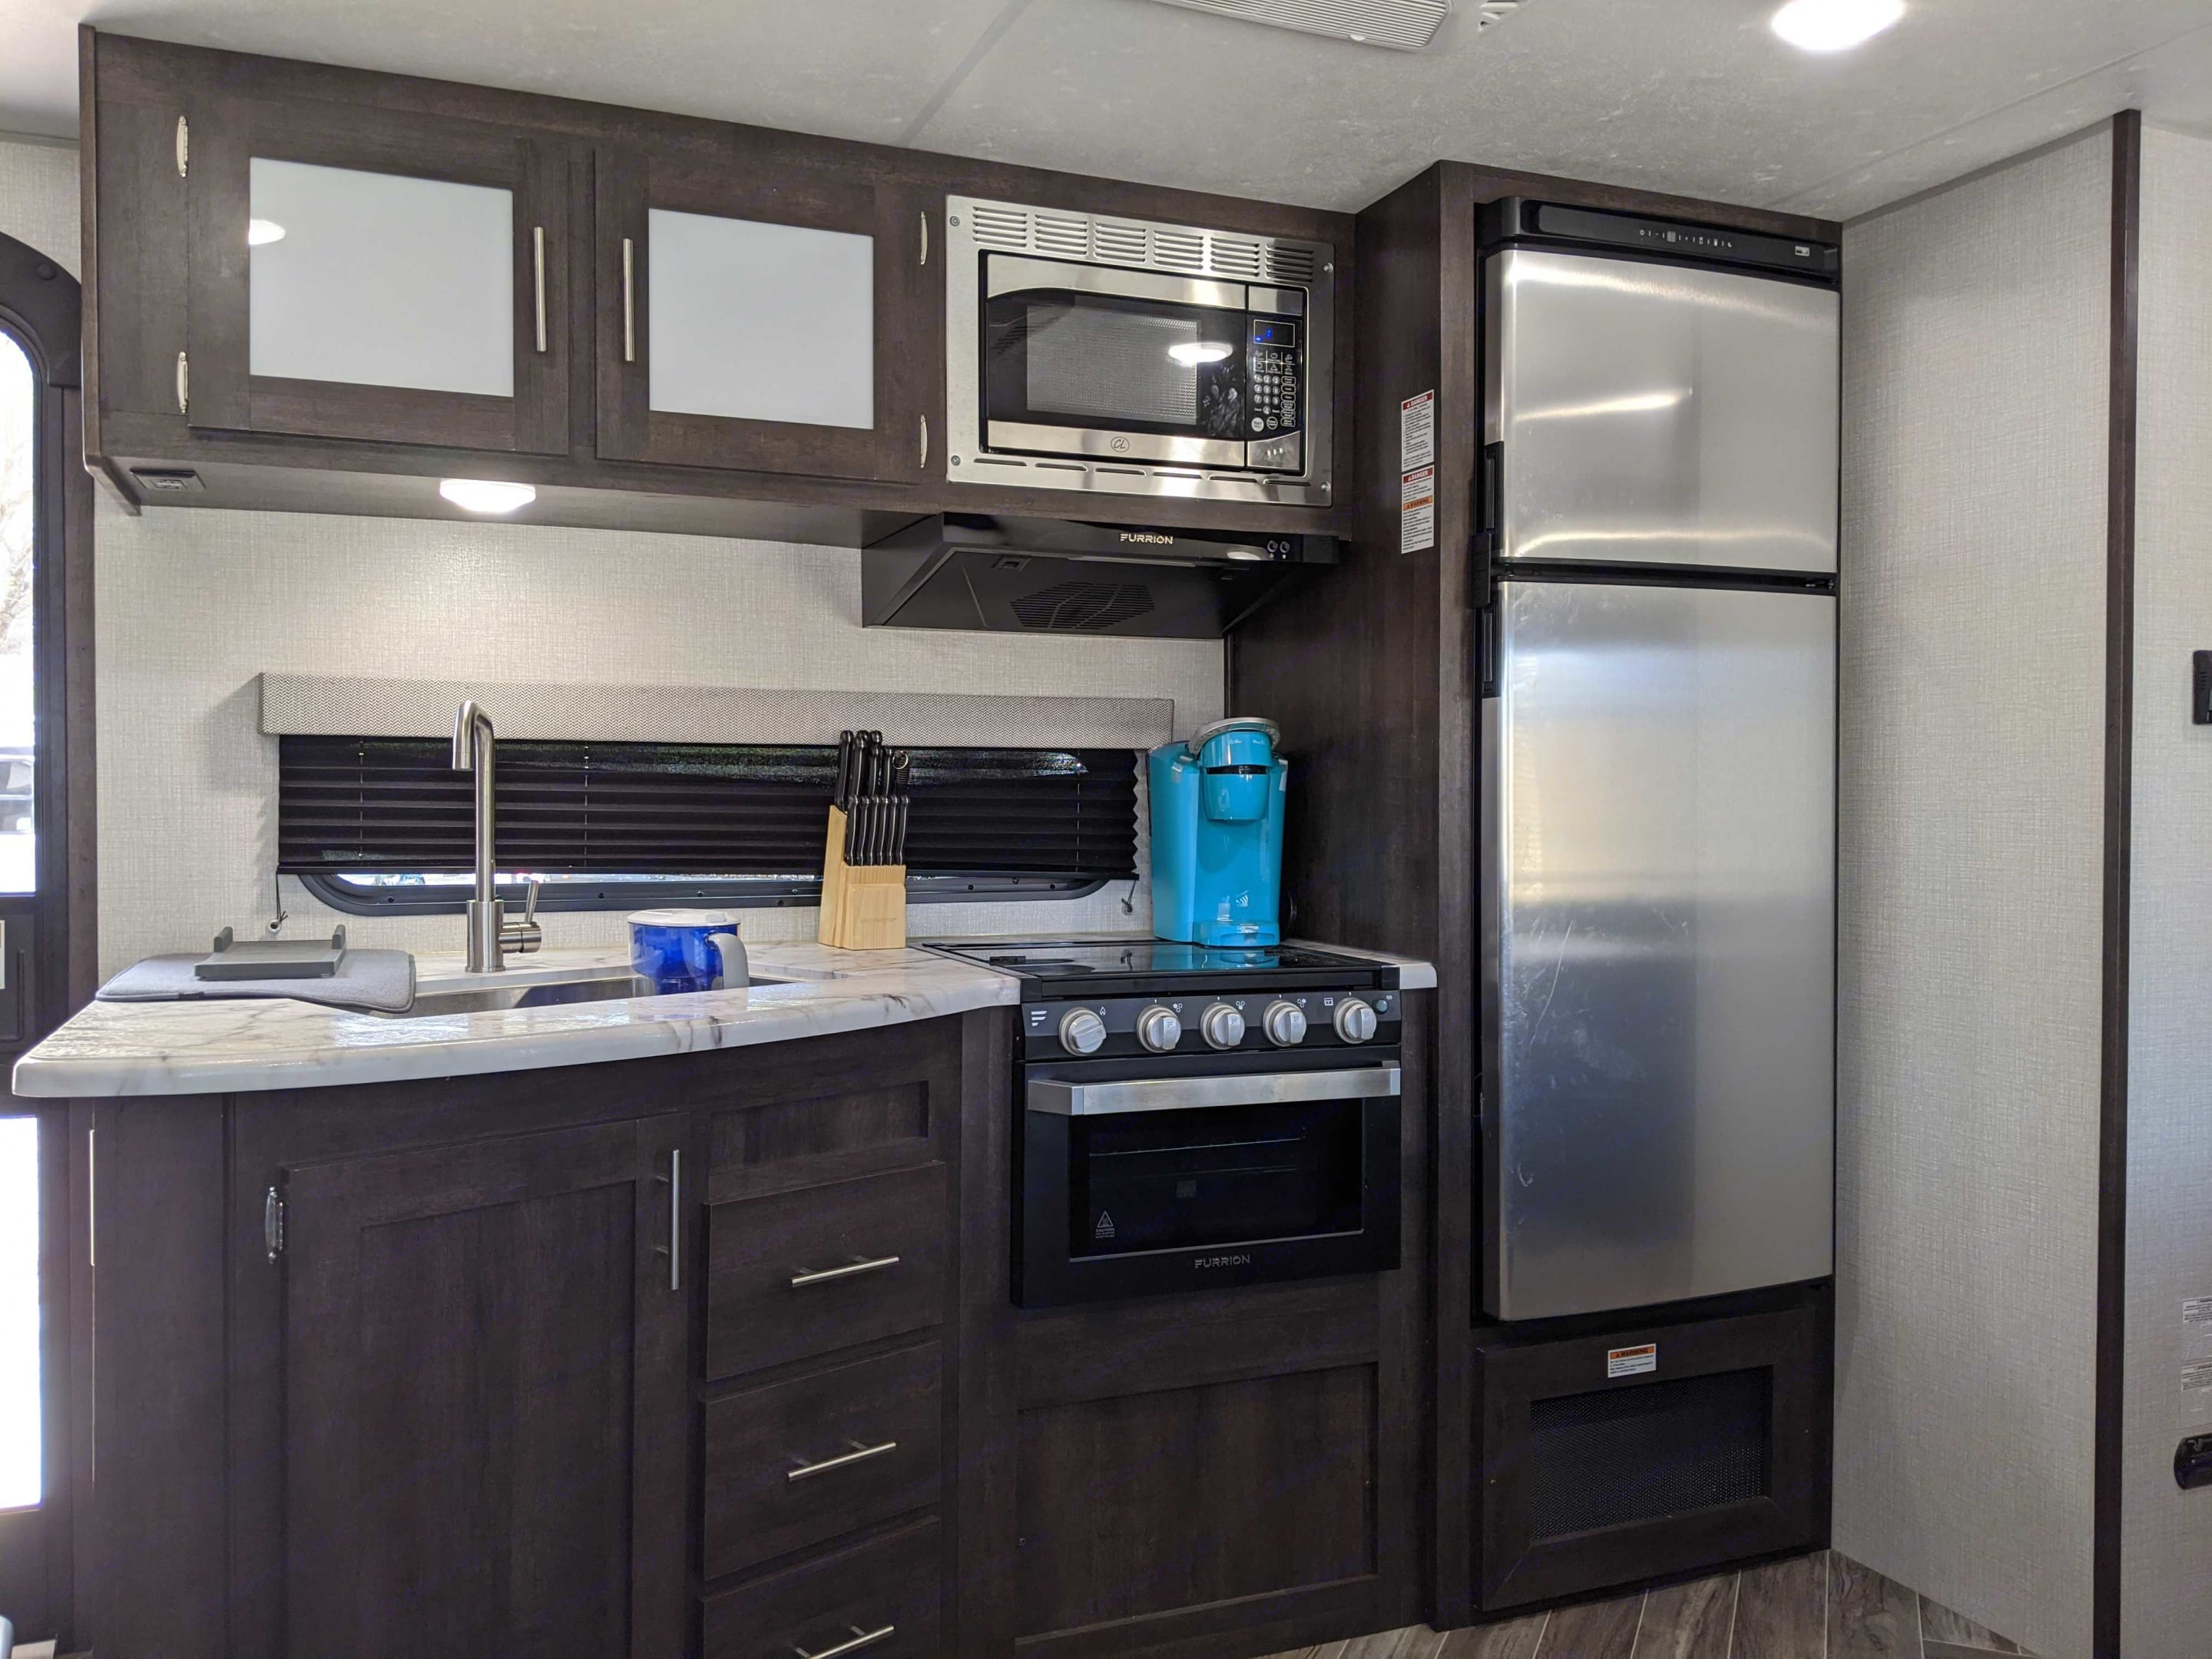 Kitchen - full kitchen that include dishes, silverware, knives, water pitcher, Keurig, and much more. K-Z Manufacturing Sportsmen 2020